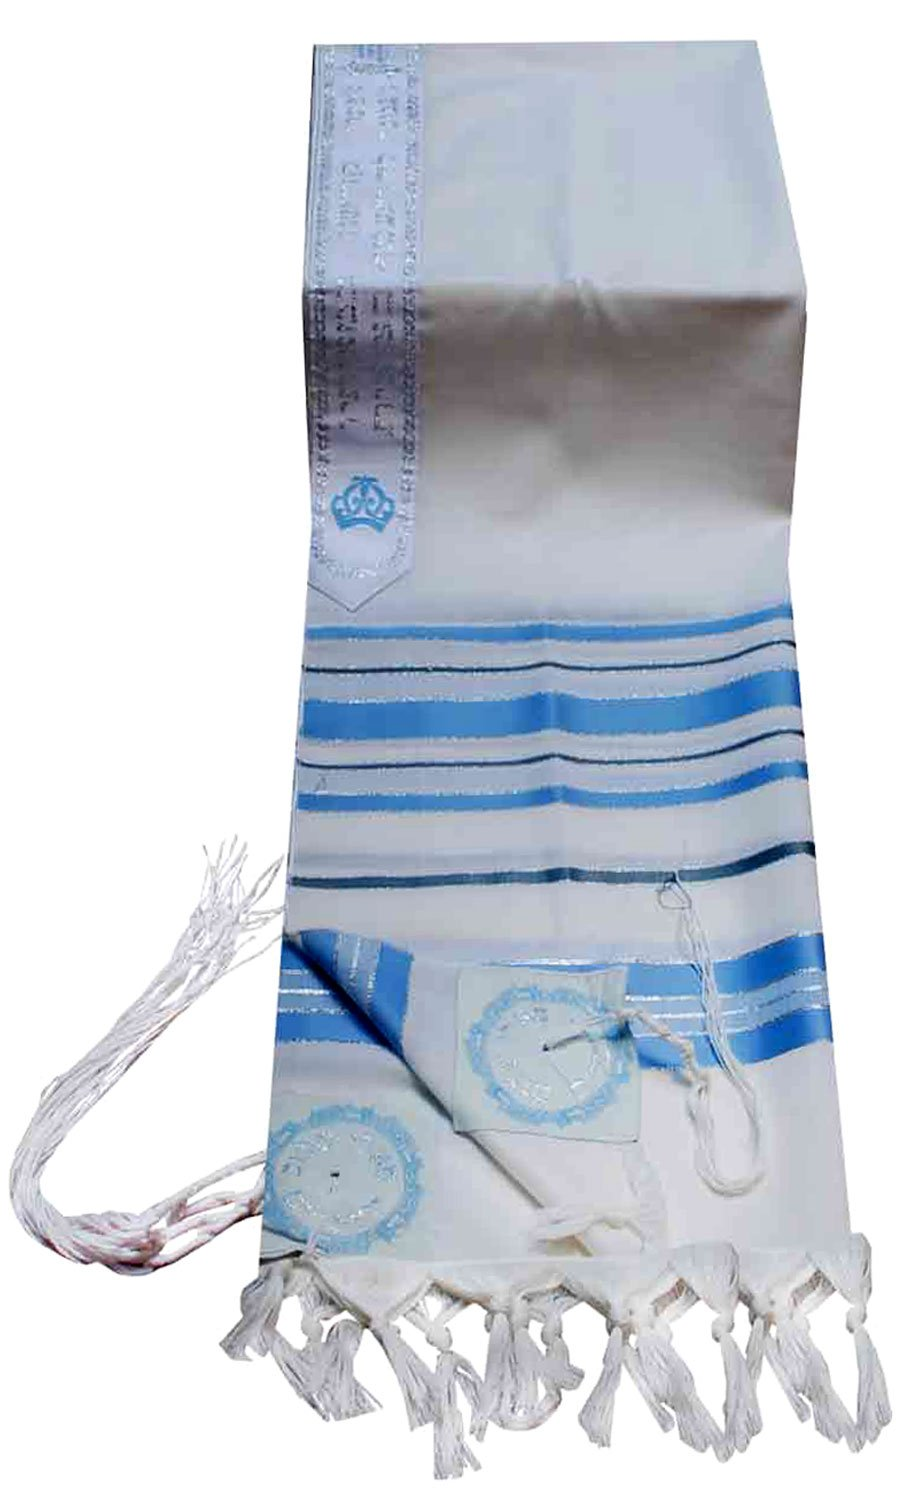 Talitnia Virgin Wool Tallit Prayer Shawl Turquoise, Silver, and Grey Stripes in Size 55'' Long and 75'' Wide